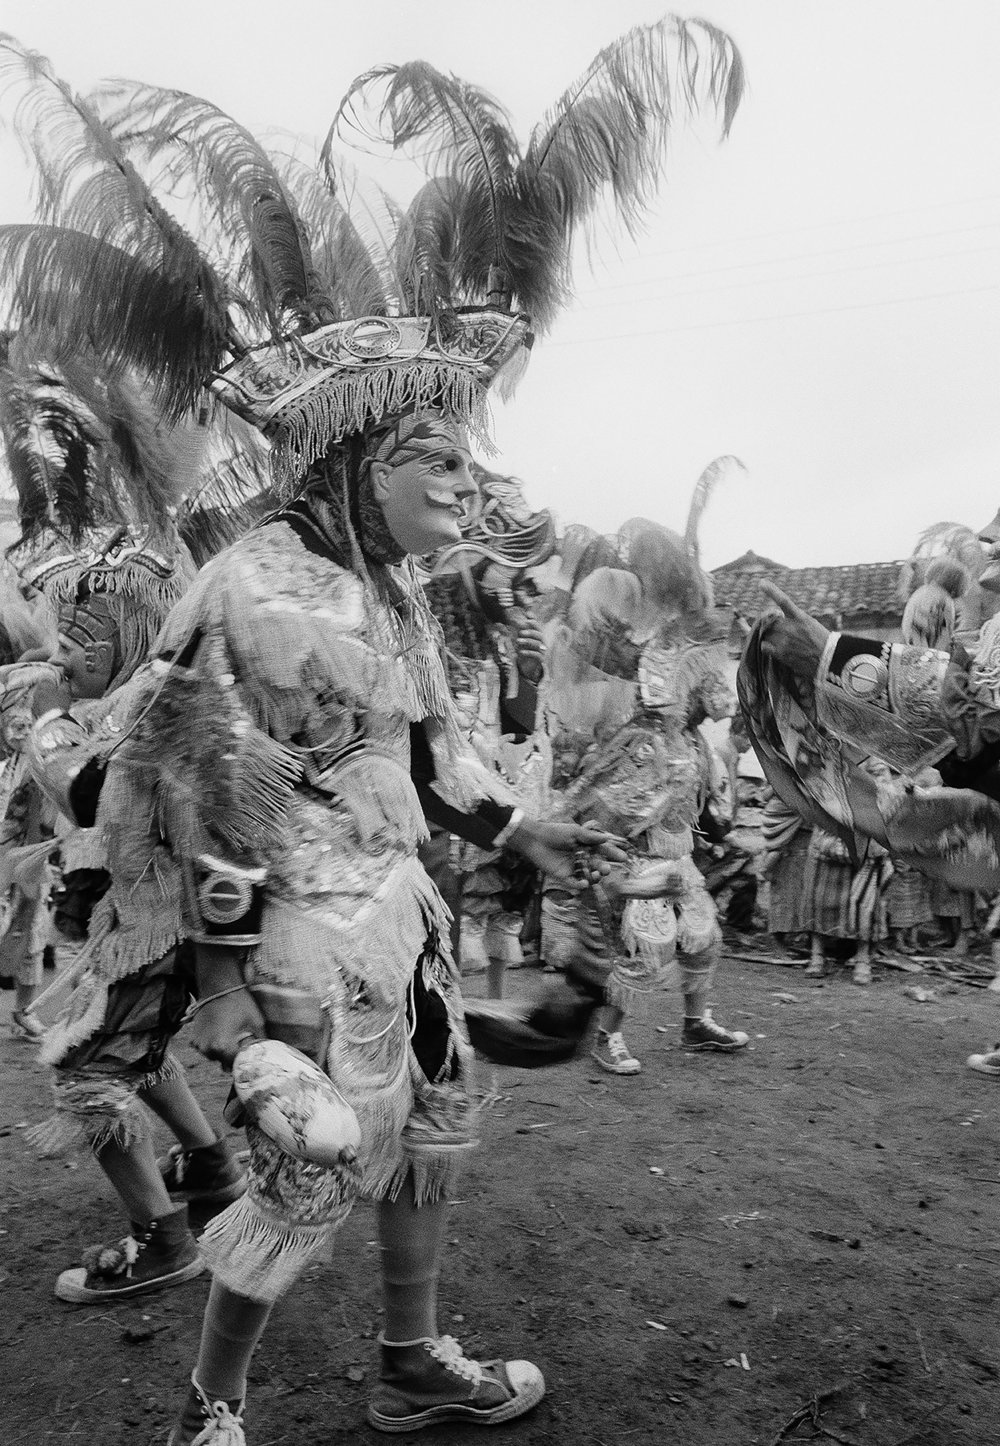 Local K'iche Maya residents reenact the Spanish conquest of the Americas at an event during the Fiesta de Santo Tomás, Chichicastenango, Guatemala, December 20, 1981. The seven day festival is a syncretism of Catholic traditions, honoring the city's patron saint Thomas, and native Maya traditions.